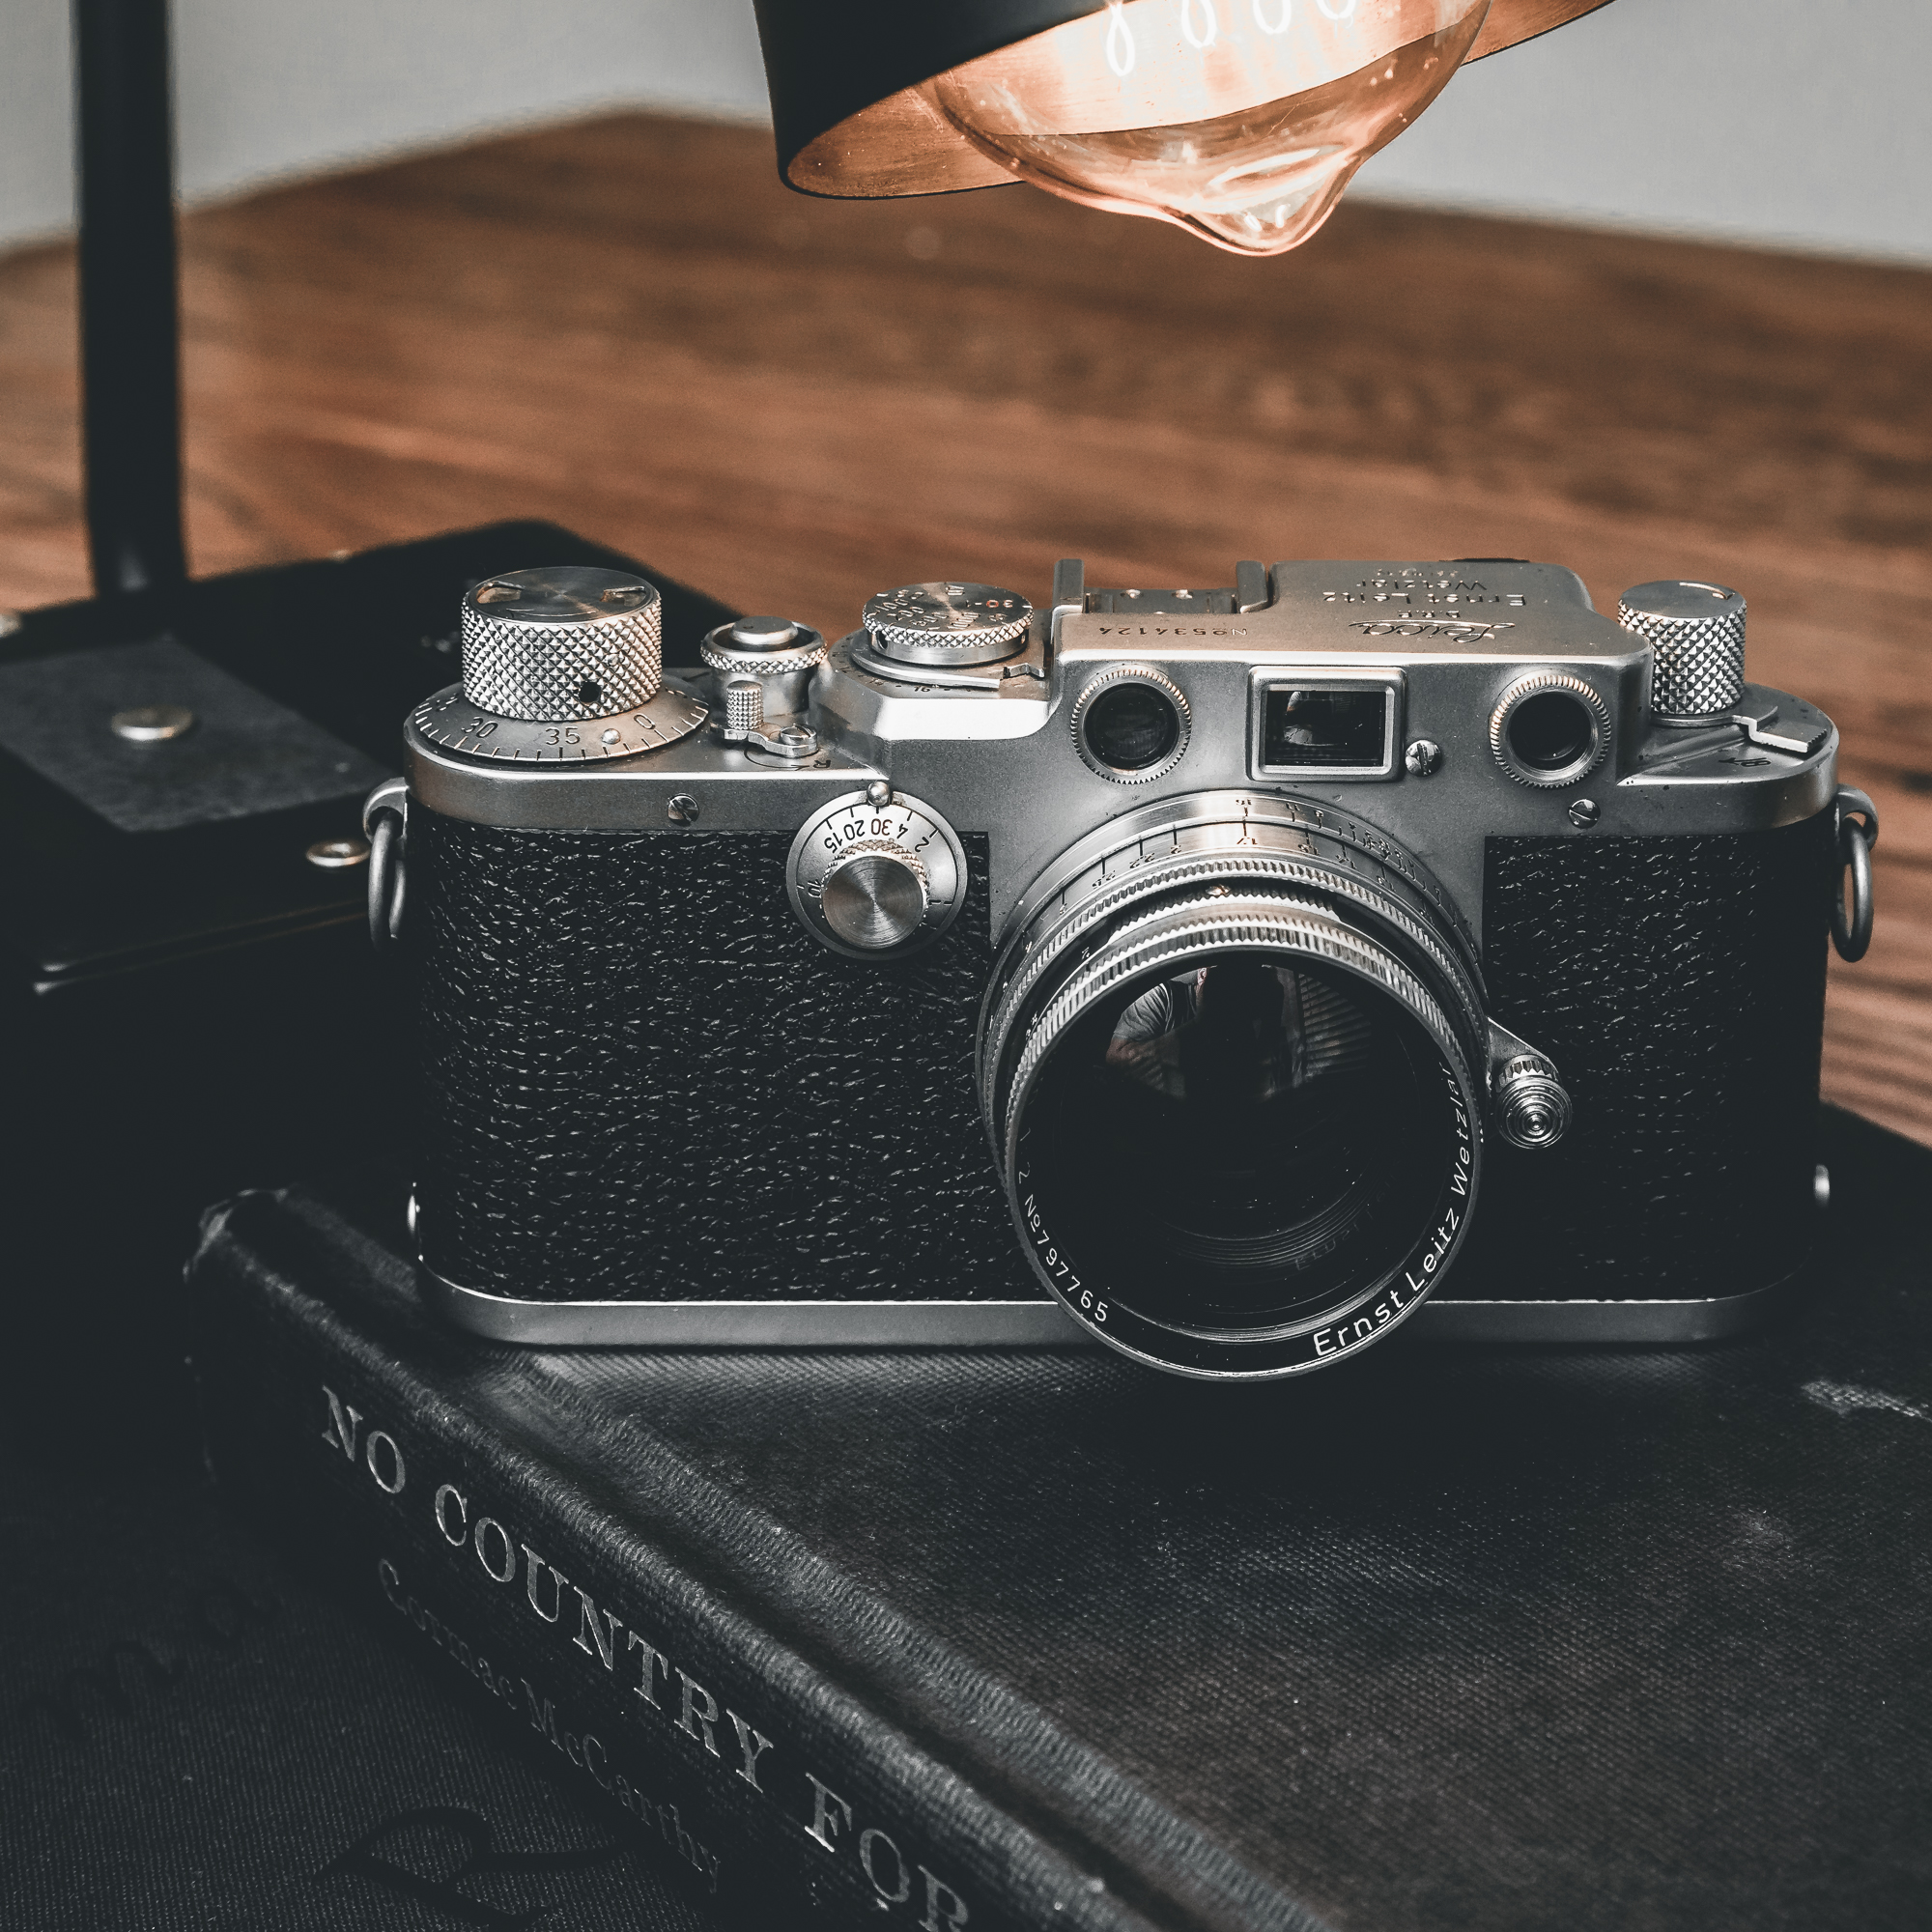 When I first fell in love with photography in the early 90's it was while shooting on film and developing in a darkroom. I haven't shot on film since 1998 so I was pretty excited to find this gorgeous 1950 Leica IIIf on craigslist a few weeks ago.I popped my first roll of Ilford 400 B&W this morning and downloaded a light meter for my phone. Looking forward to seeing my first 36 exposures... and hopefully they aren't a bunch of under and over-exposed disasters. I'll be posting some of the images here in the next few weeks assuming they aren't. On a side note I find it pretty funny how after every shot I've taken so far on this camera I chimp the back only to be staring at black leather.